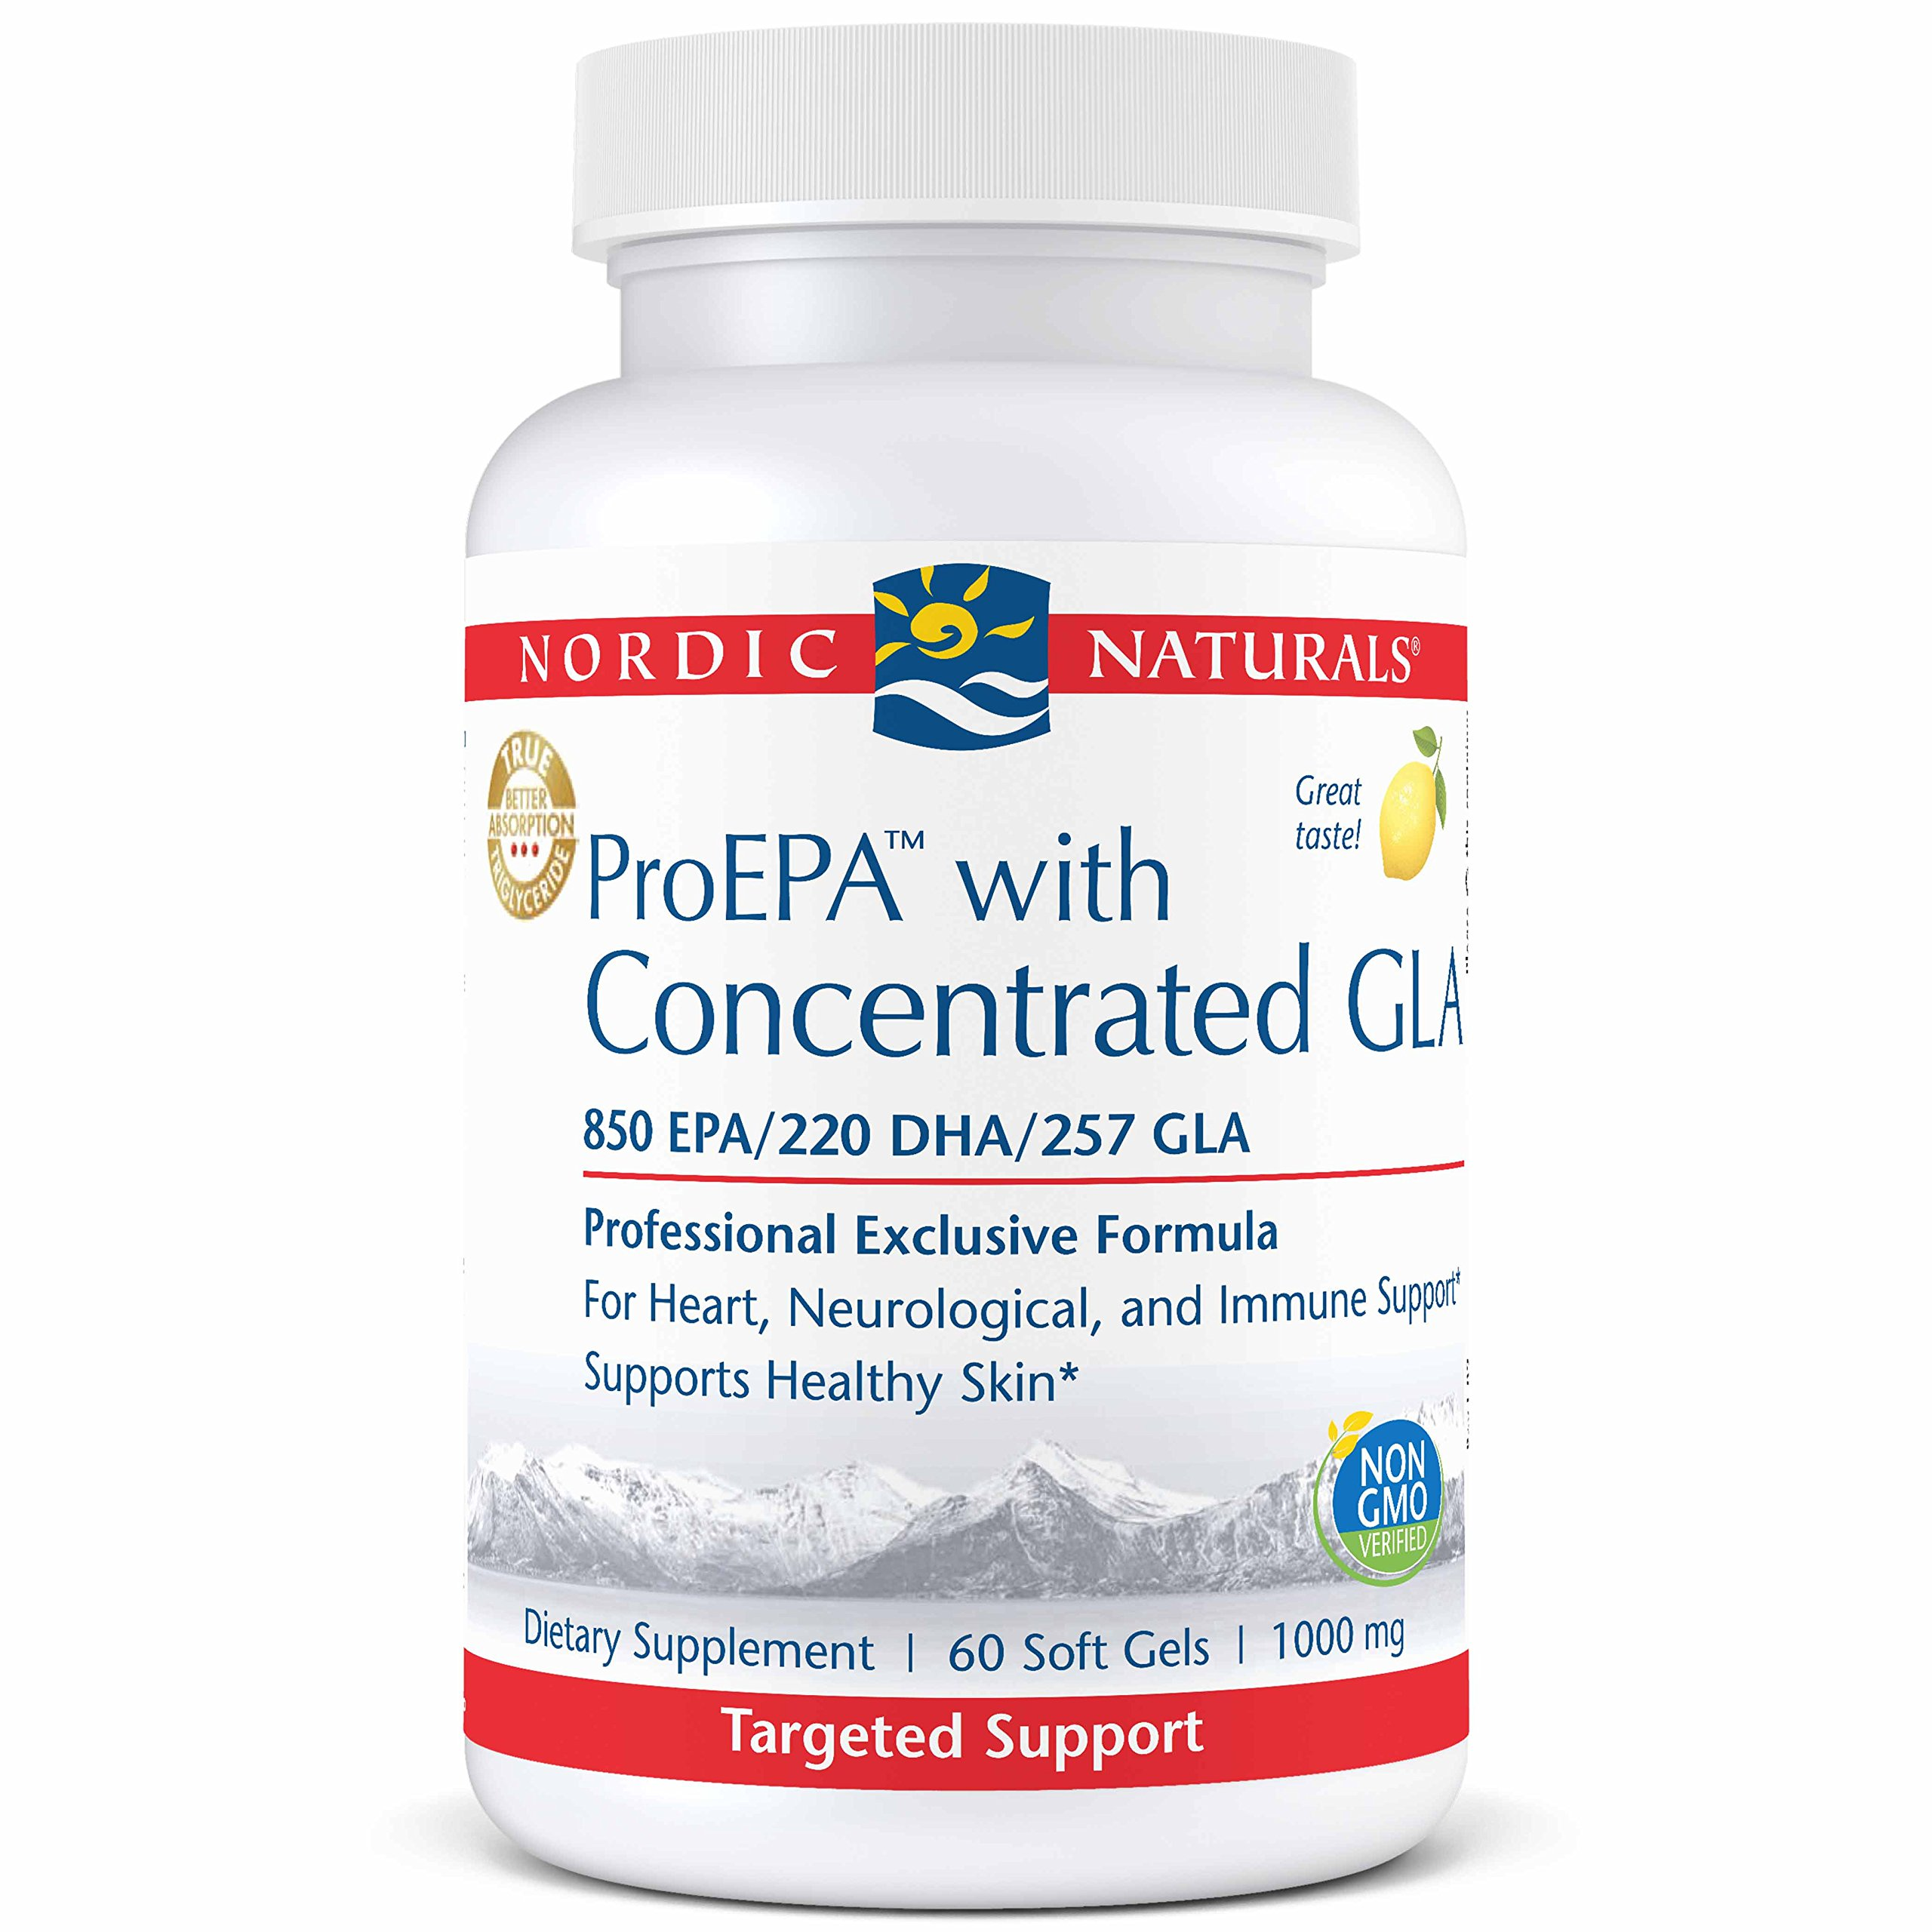 Nordic Naturals ProEPA with Concentrated GLA - Fish Oil, Borage Oil, 850 mg EPA, 220 mg DHA, 257 mg GLA, for Cardiovascular, Neurological, Joint, Skin, and Immune Health, 60 Soft Gels by Nordic Naturals